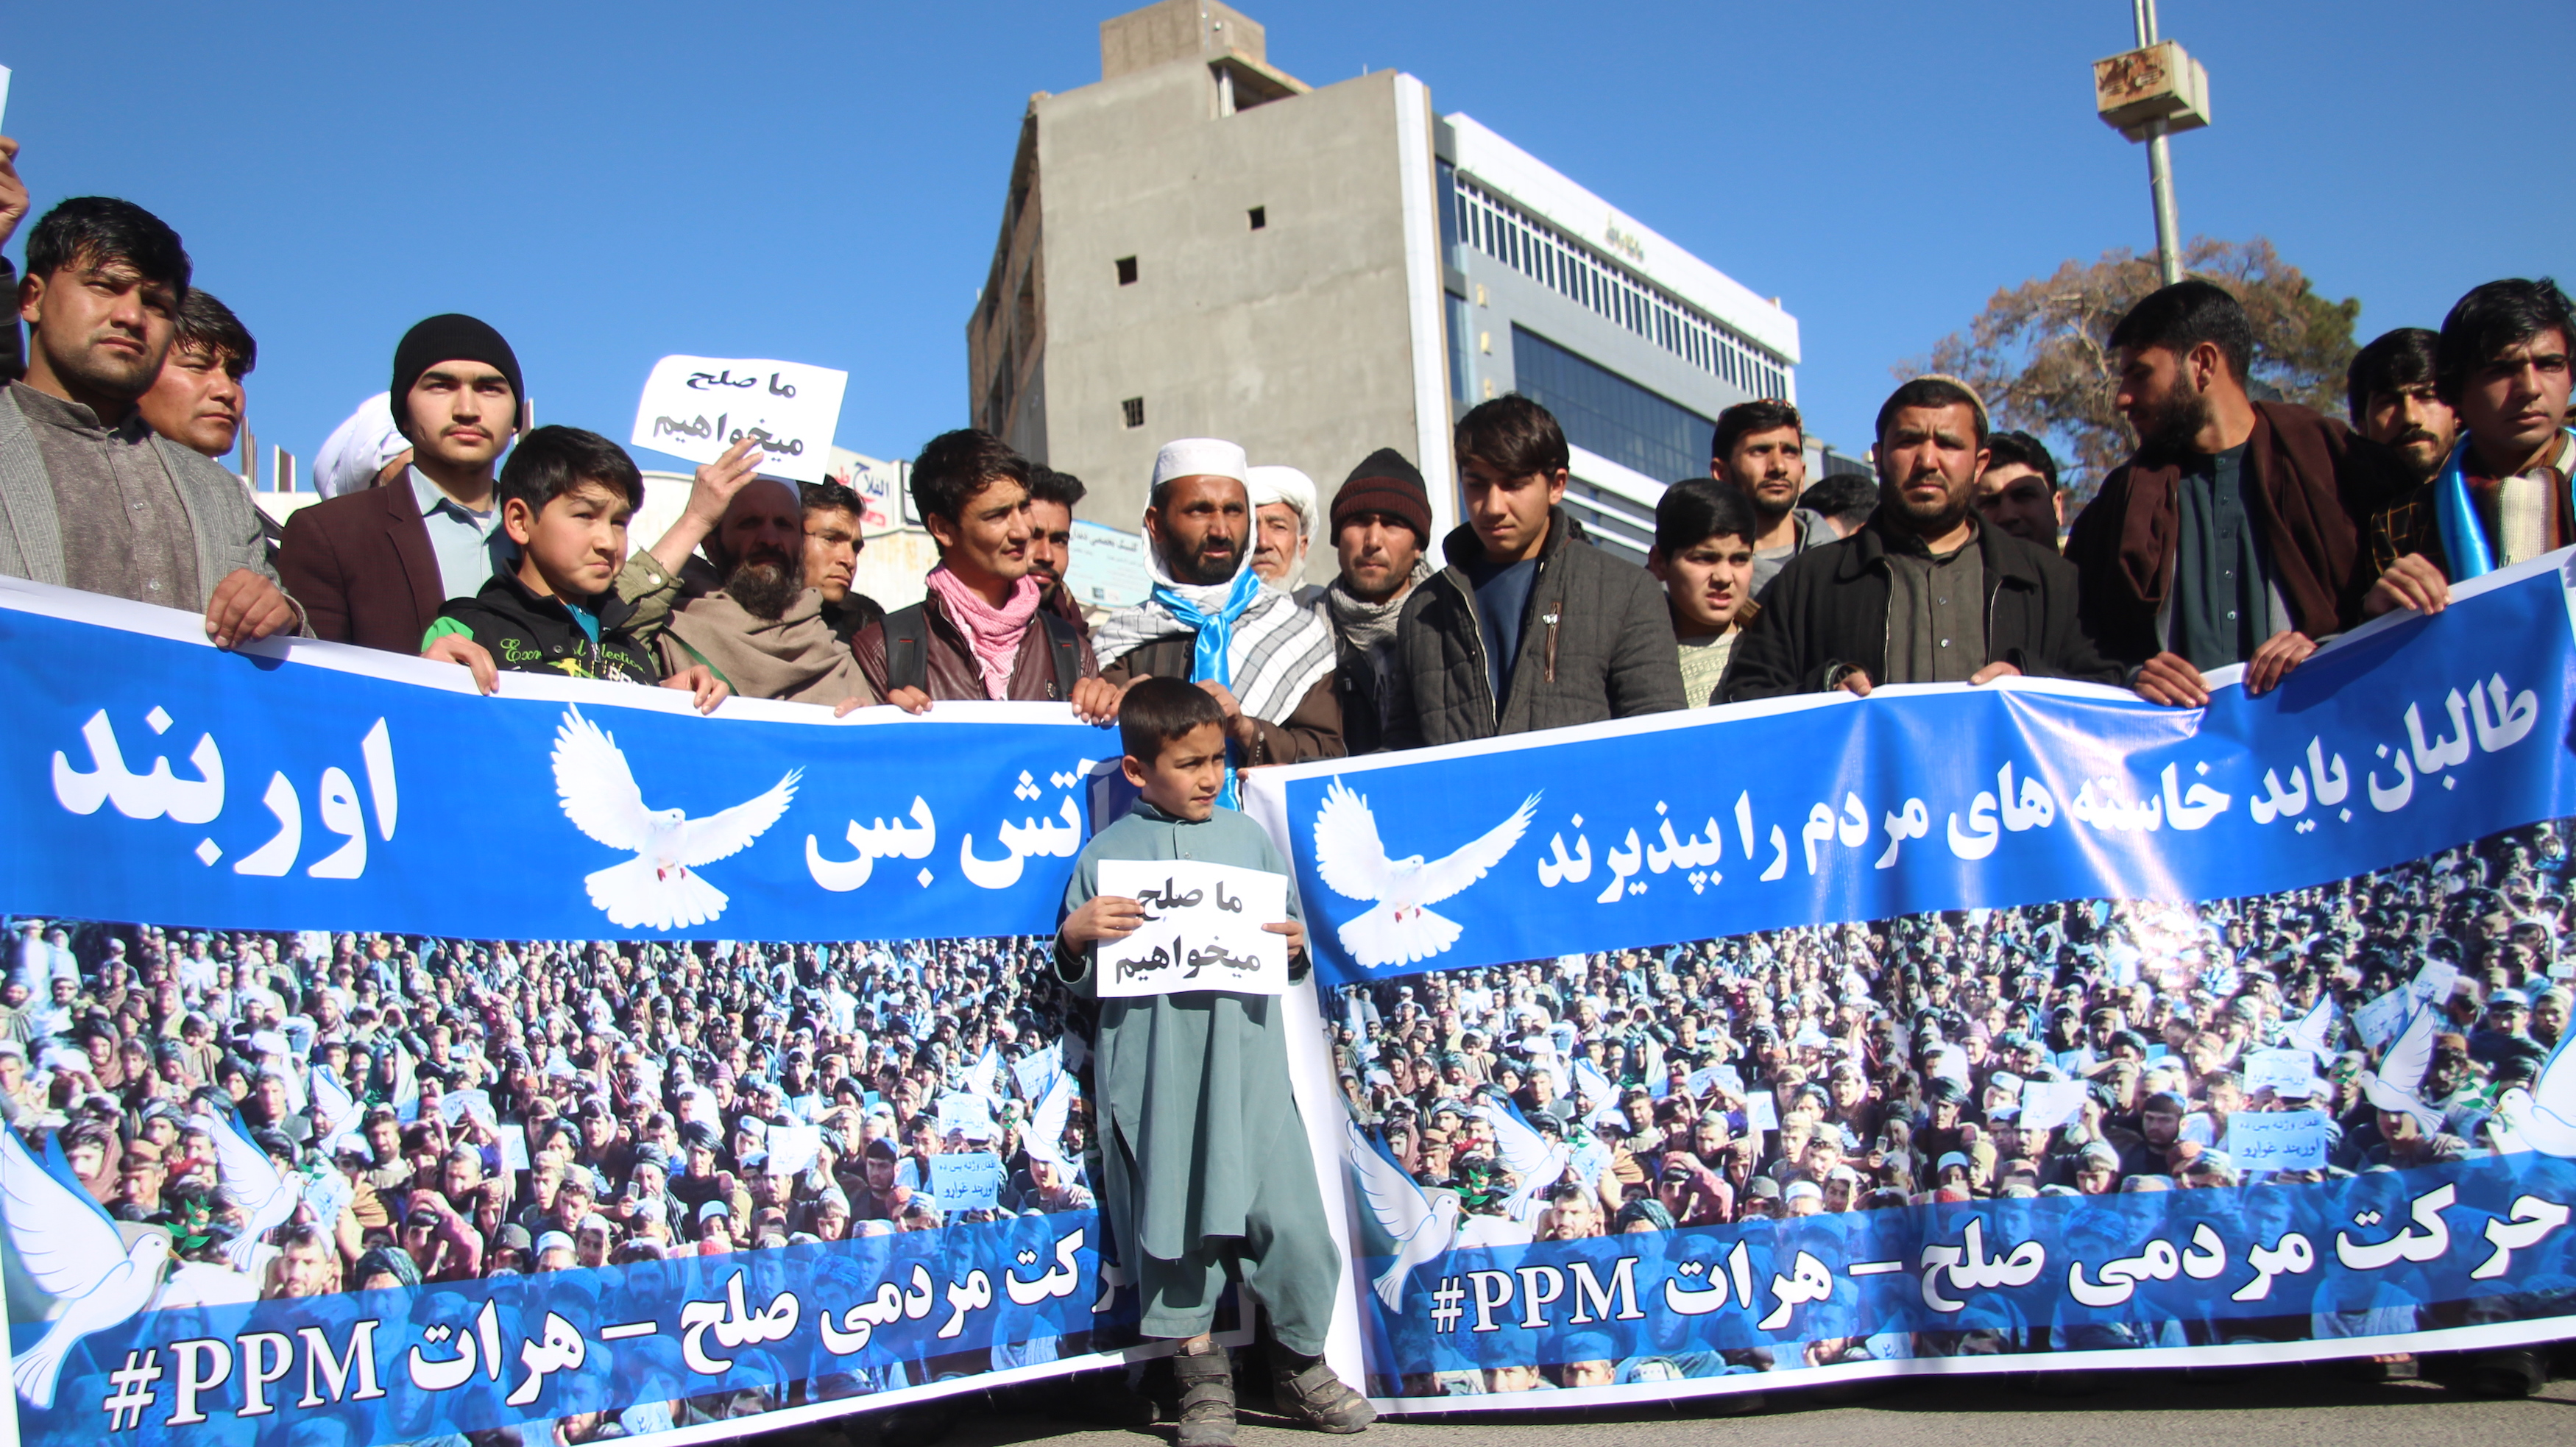 Marching to end bloodshed, People's Peace Movement arrives in Herat